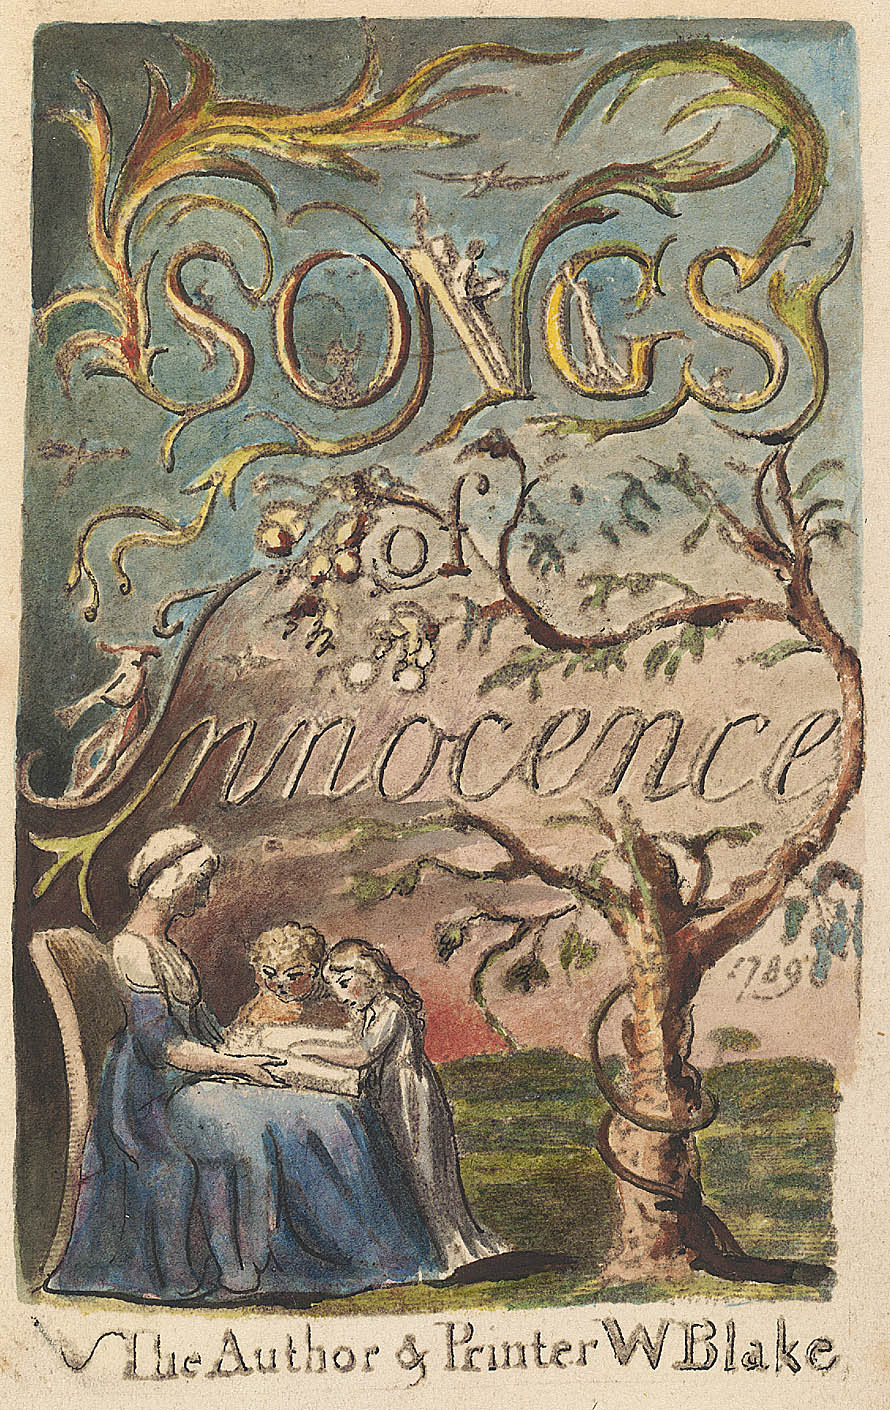 Songs of Innocence, copy L, object 2